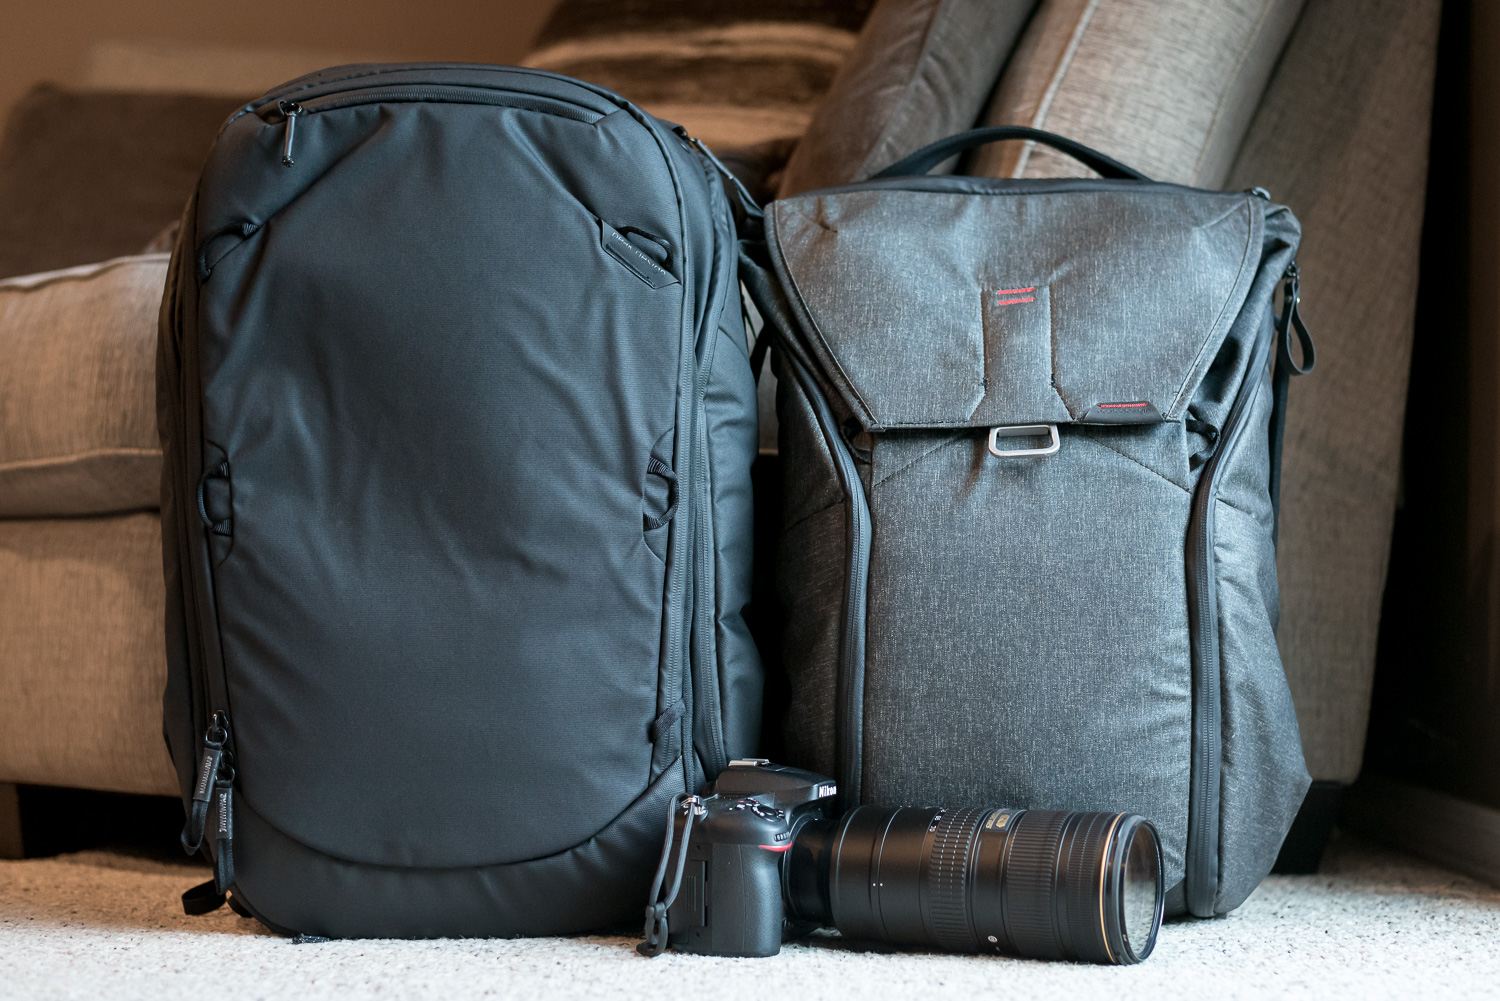 The 45L Travel Backpack compared to my 35L Everyday Backpack ba5e3f9d98a8d